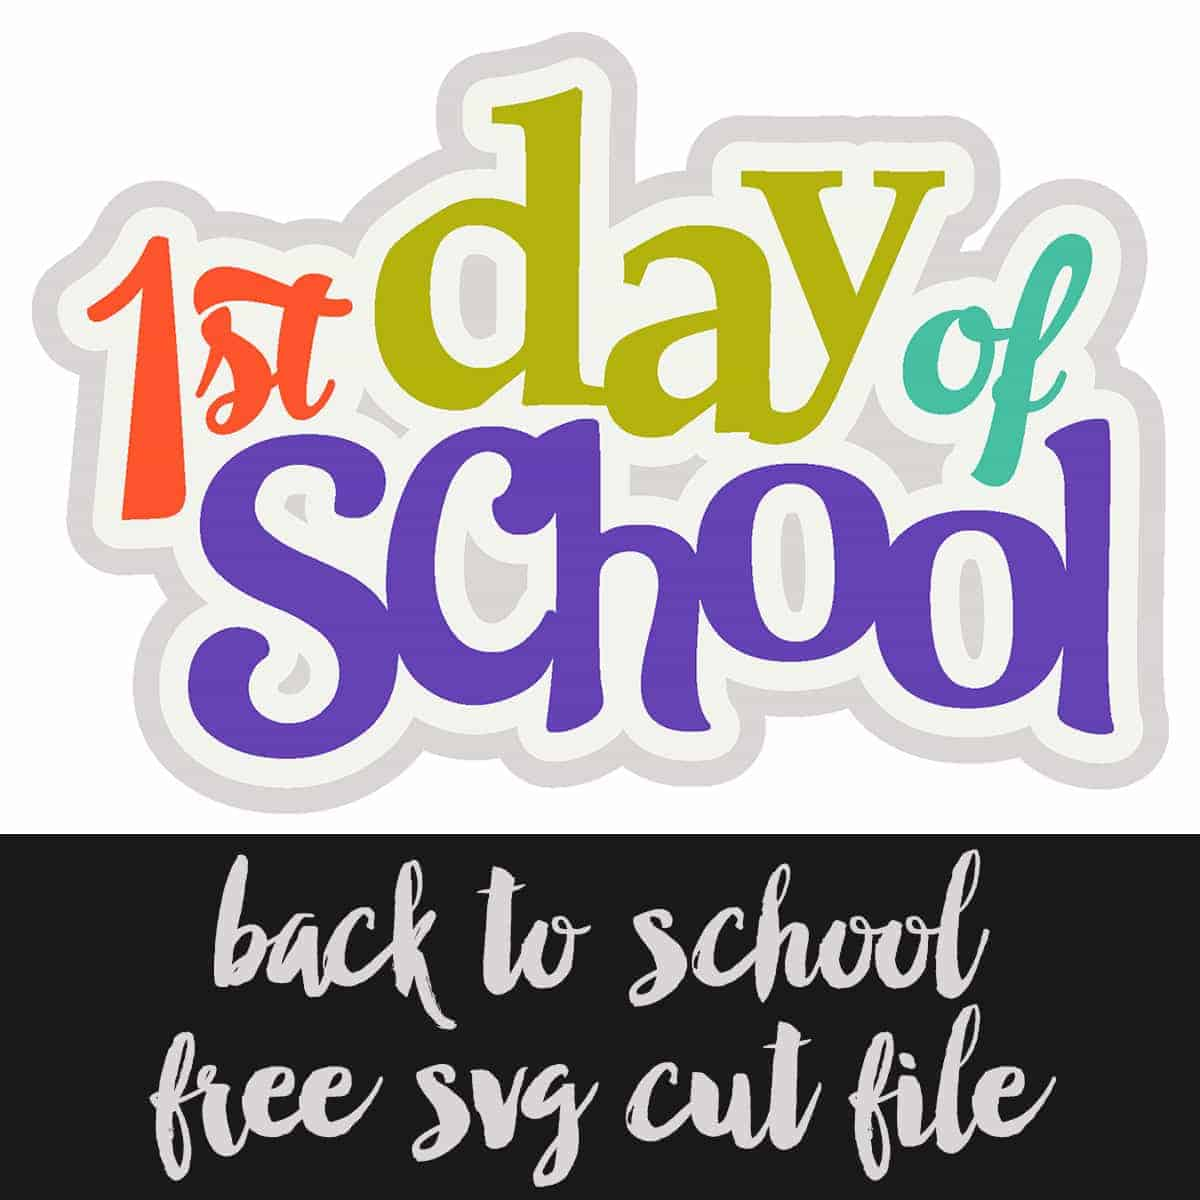 Back to School First Day of School SVG Cut File | LovePaperCrafts.com